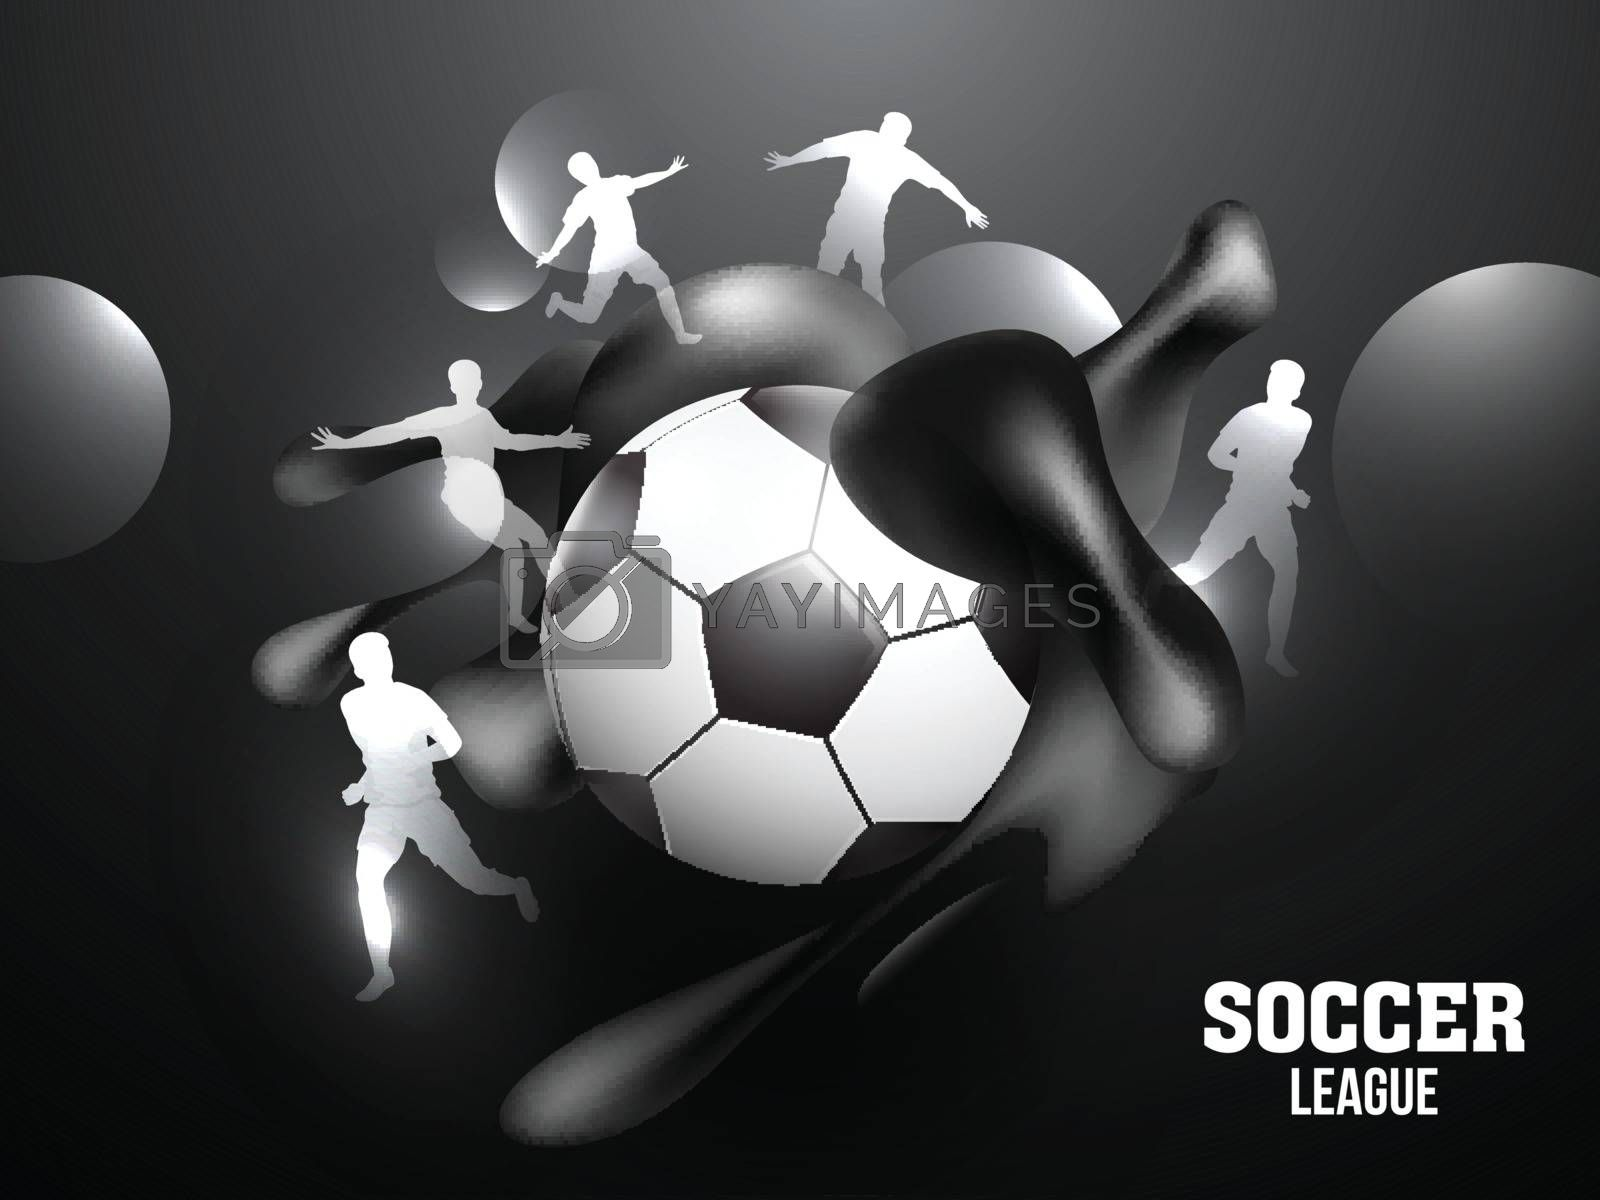 Royalty free image of Soccer League banner or poster design with soccer ball and silho by aispl